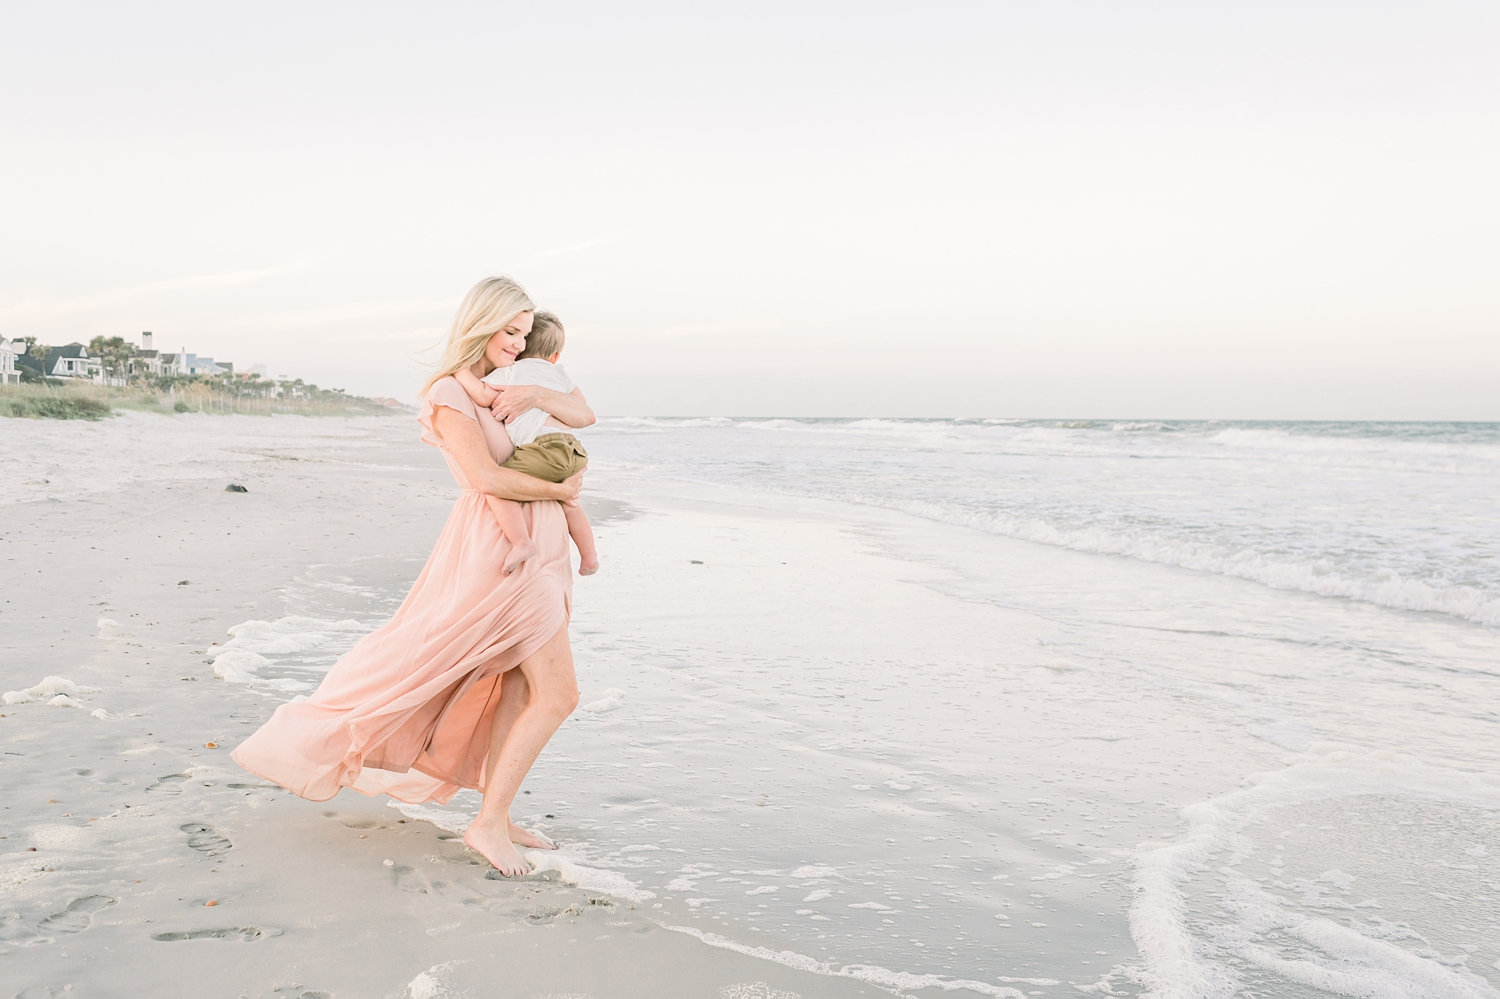 mother embracing toddler son on the beach, Ponte Vedra Beach, Florida, Ryaphotos